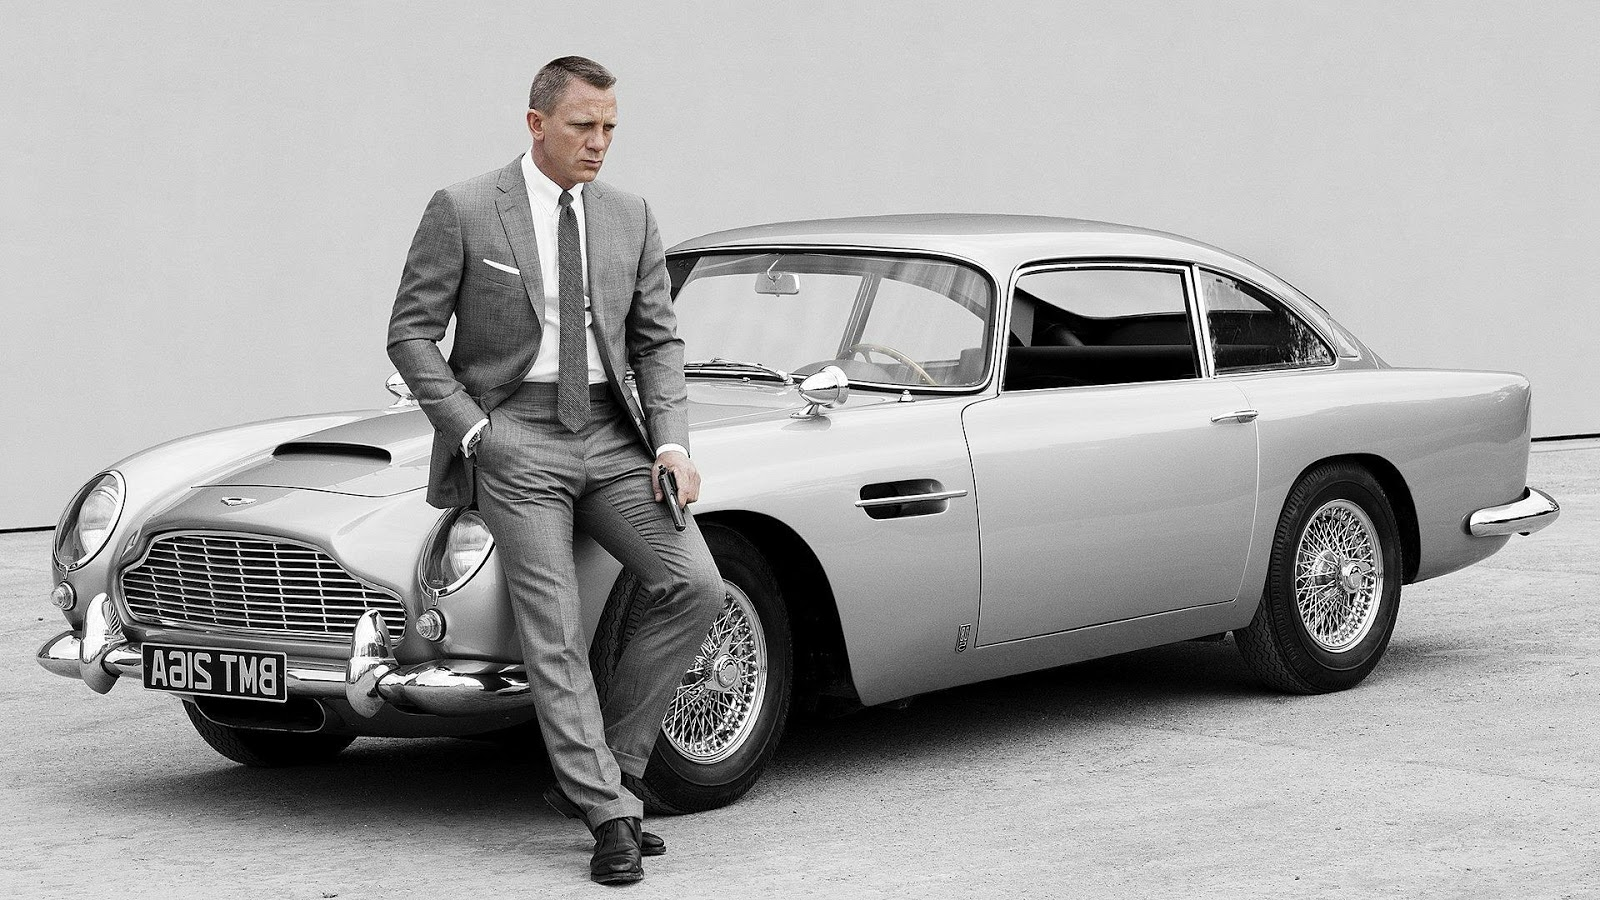 James Bond 007 Movie Cars Image Collection All Latest New Old